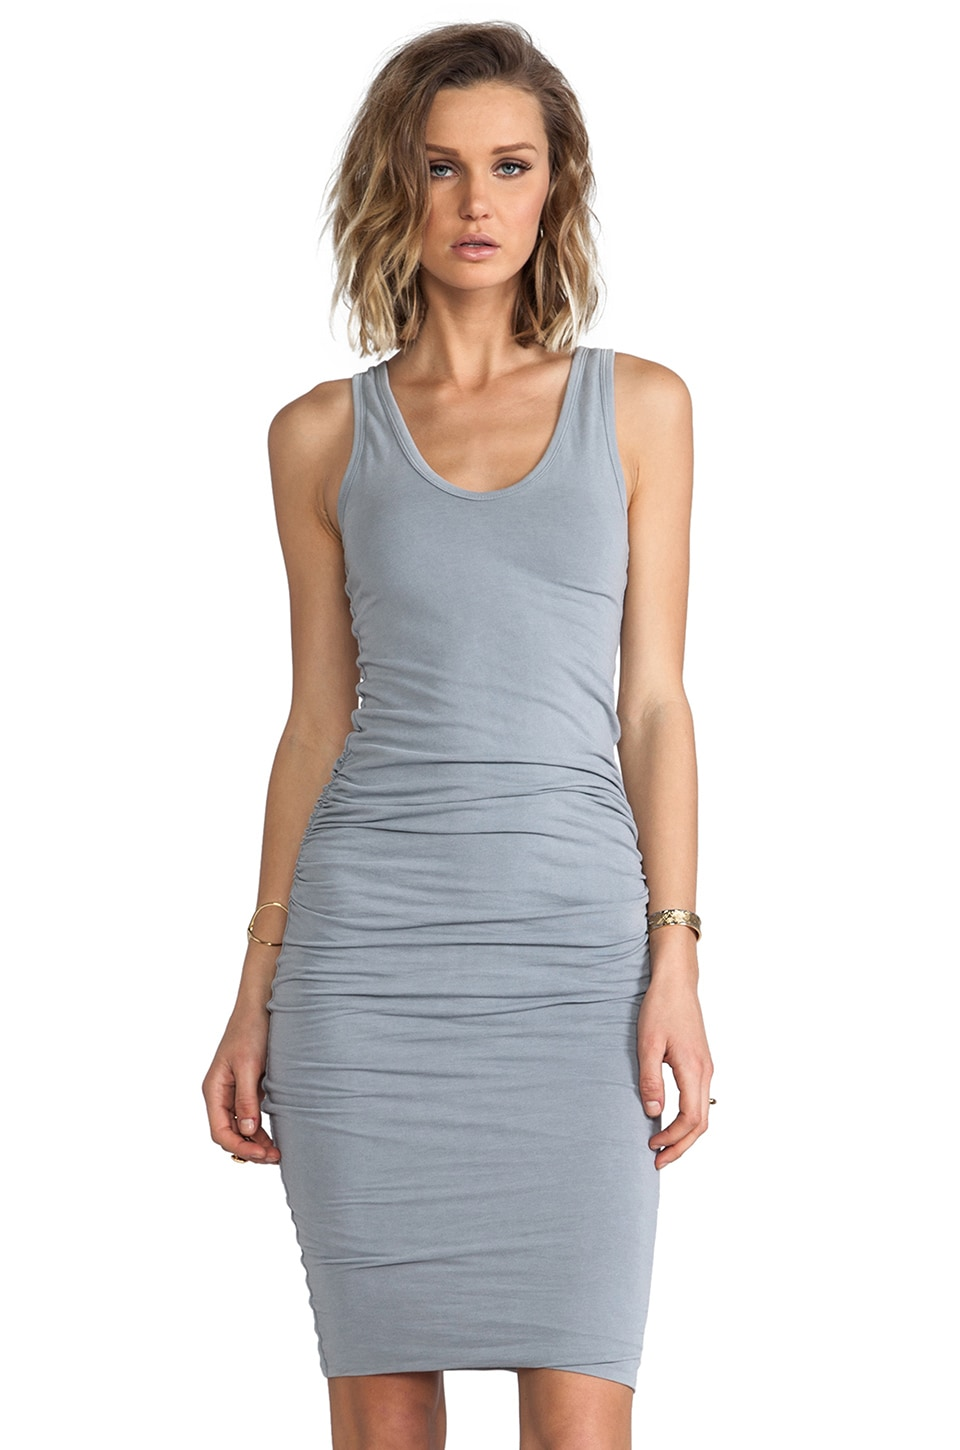 James Perse Rouched Tank Dress in Ore